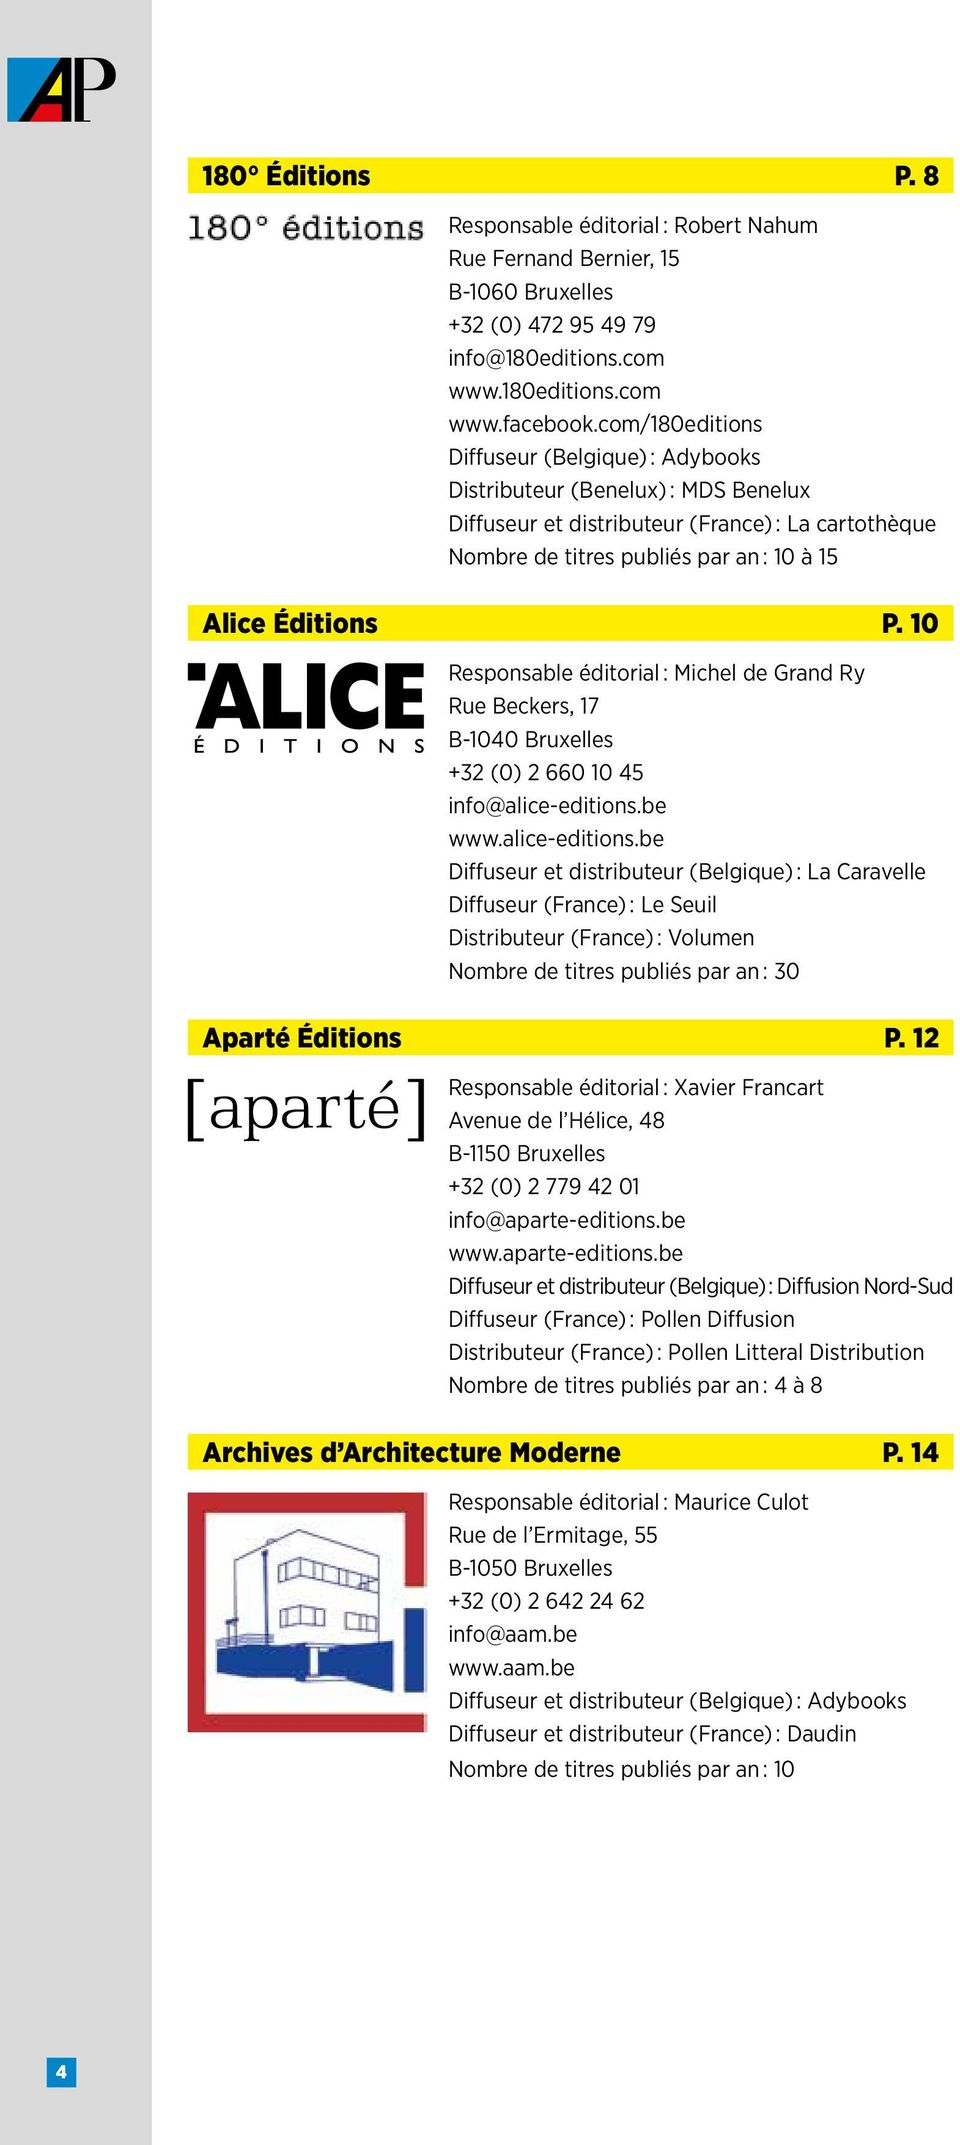 10 Responsable éditorial : Michel de Grand Ry Rue Beckers, 17 B-1040 Bruxelles +32 (0) 2 660 10 45 info@alice-editions.